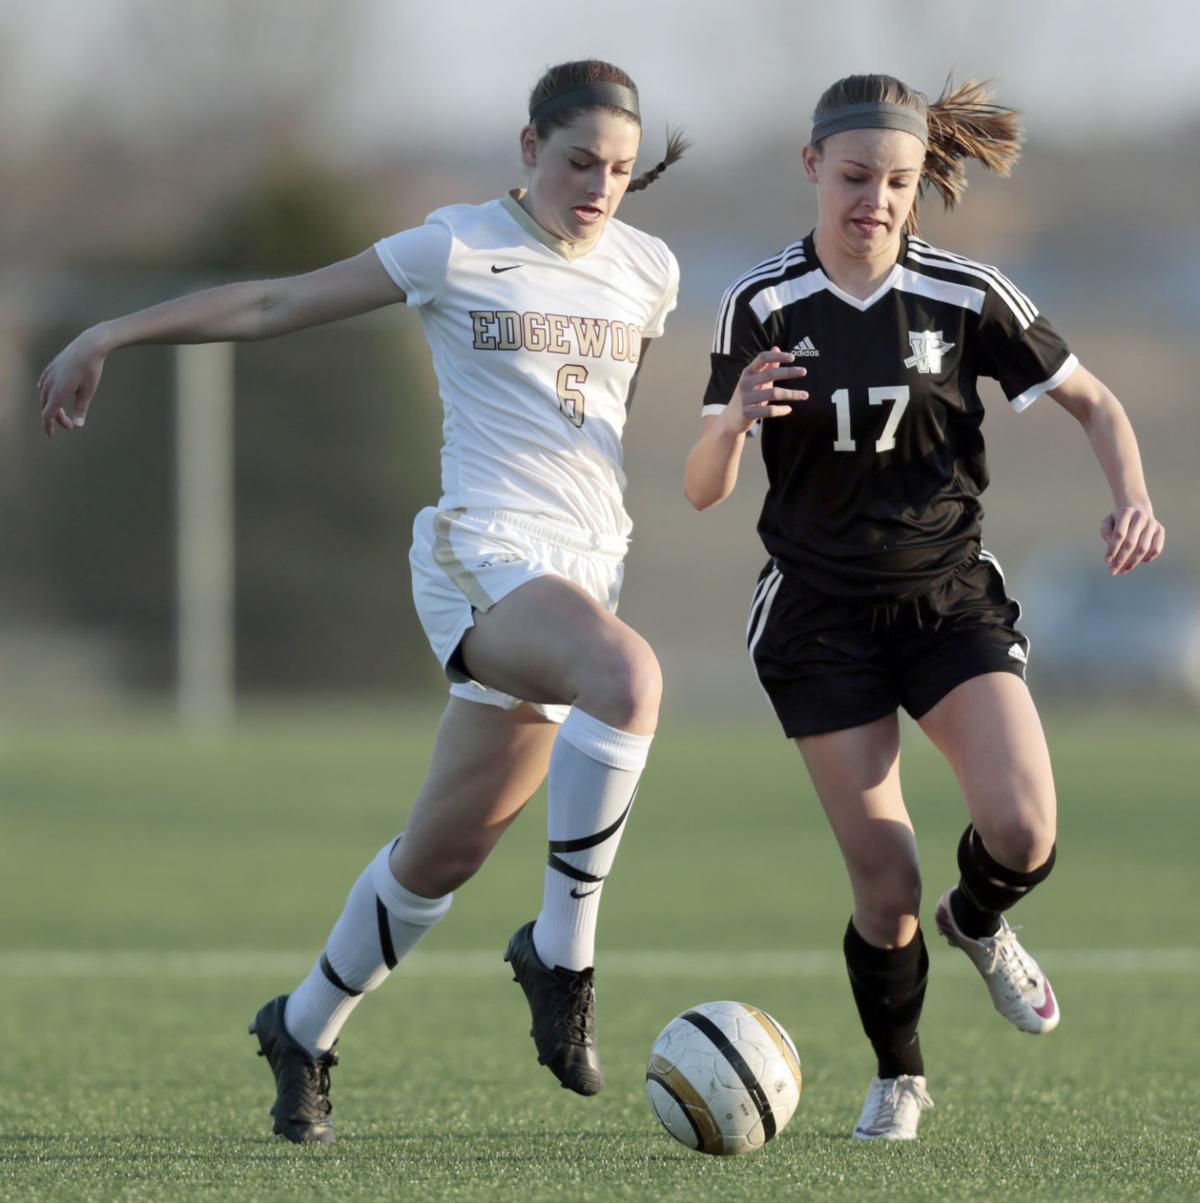 waunakee girls Waunakee's nate stevens named the area's top baseball athlete for 2018 jun 27, 2018  14 area girls soccer players earn all-state recognition jun 28.